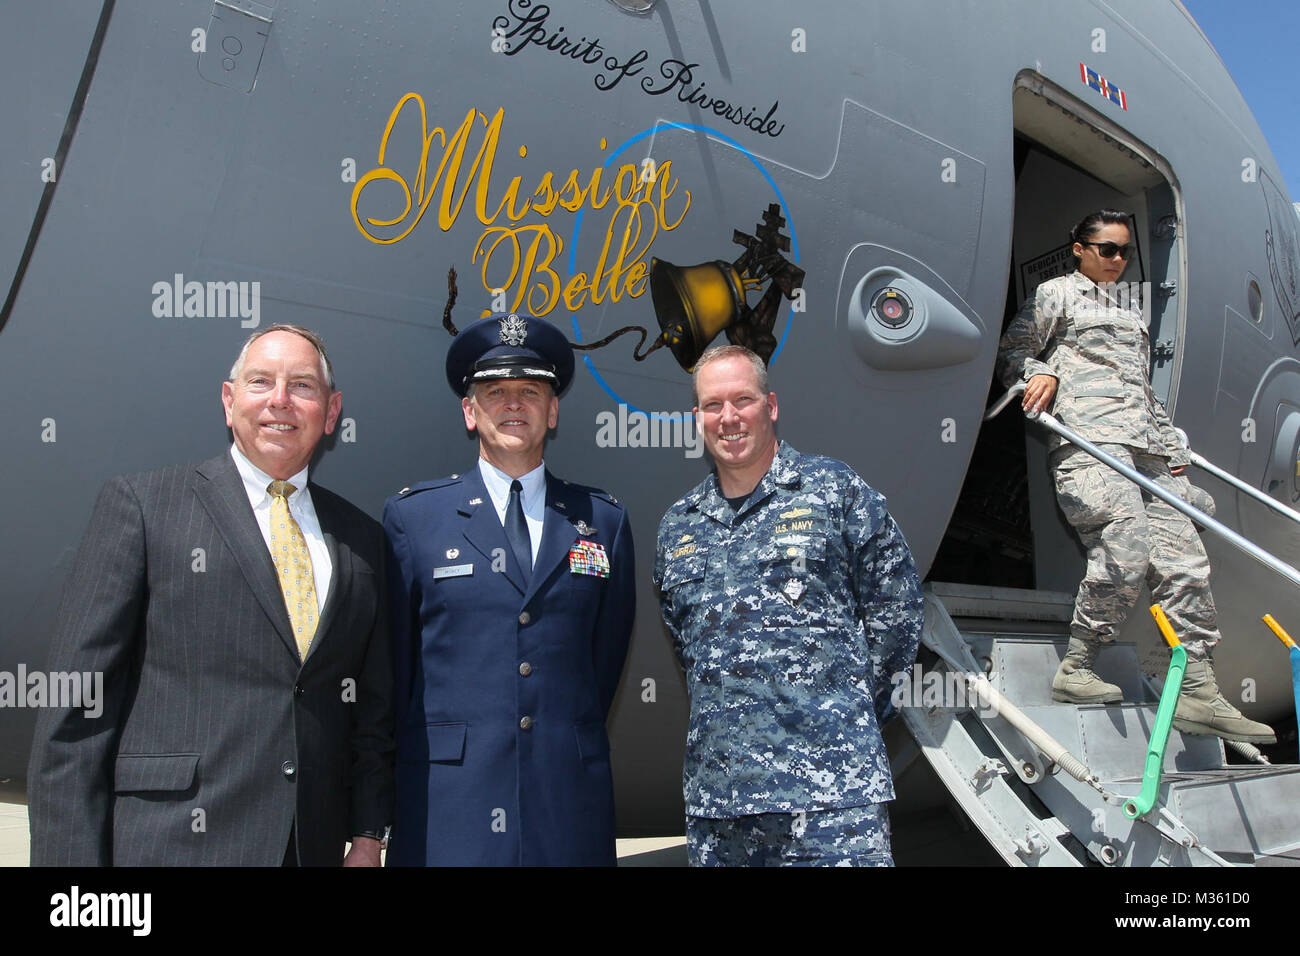 150811-N-HW977- MARCH AIR RESERVE BASE, Calif. (Aug. 11, 2015) Photo from ceremony as Col. Russell Muncy, commander, - Stock Image